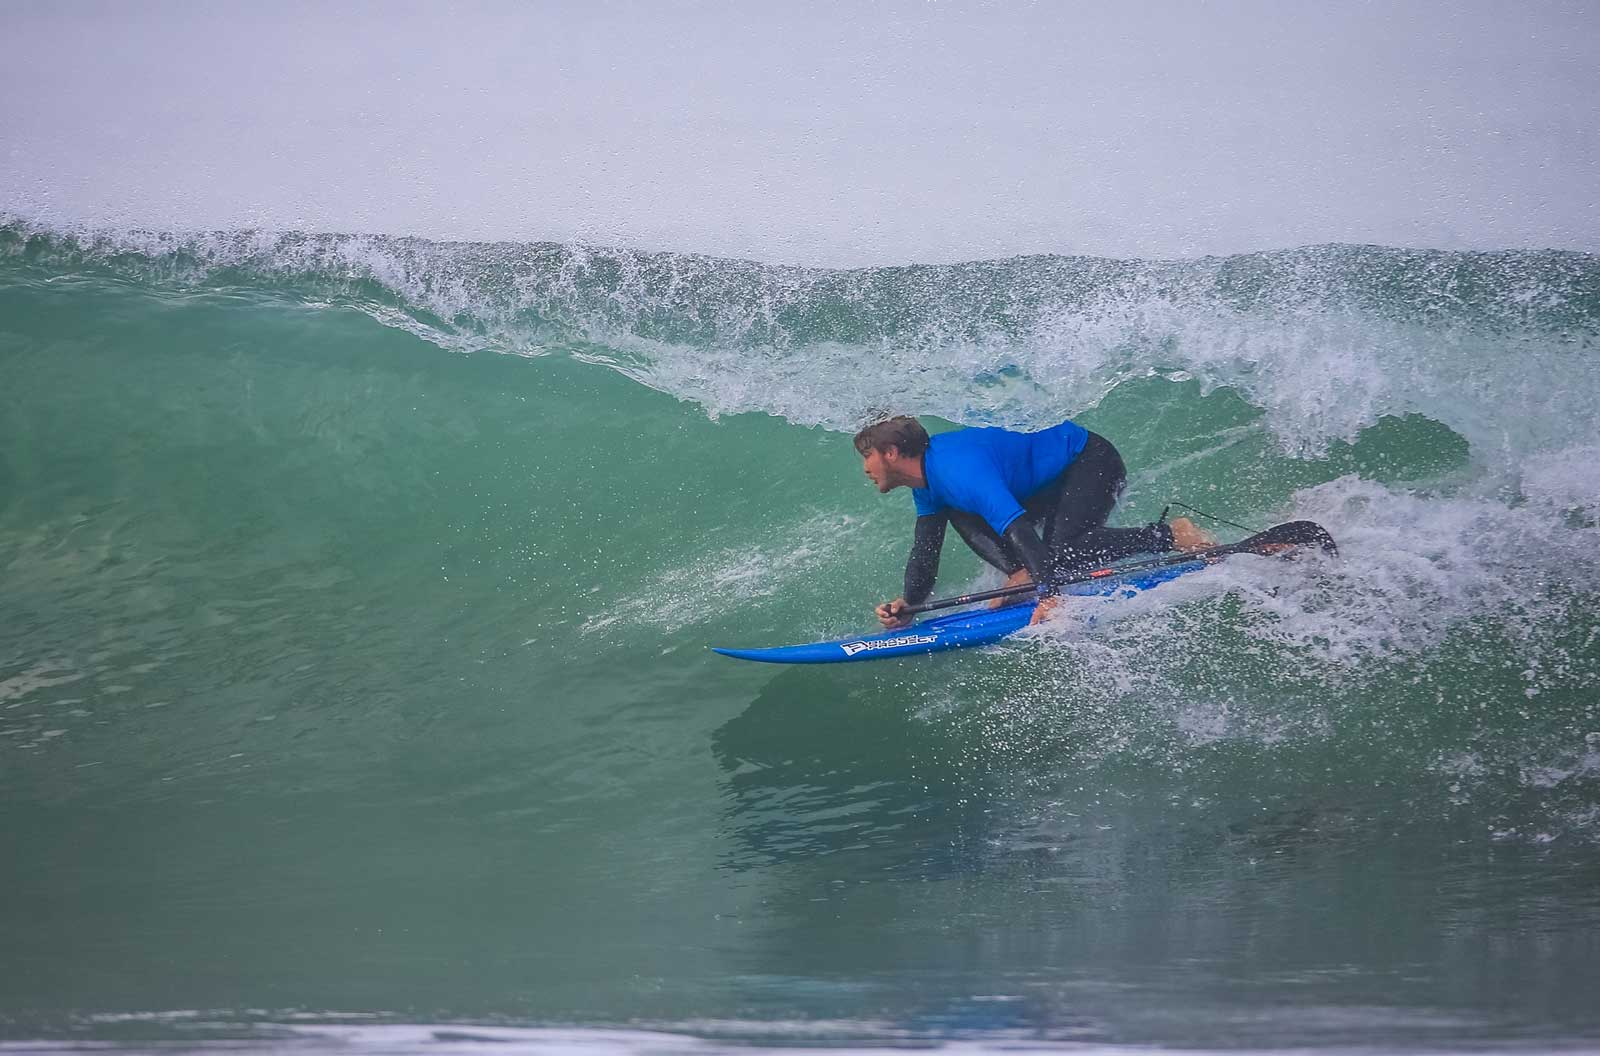 Zane's-Double-Win-at-the-Ventura-Paddlesurf-and-Hydrofoil-Championships-pro-barrel-1600